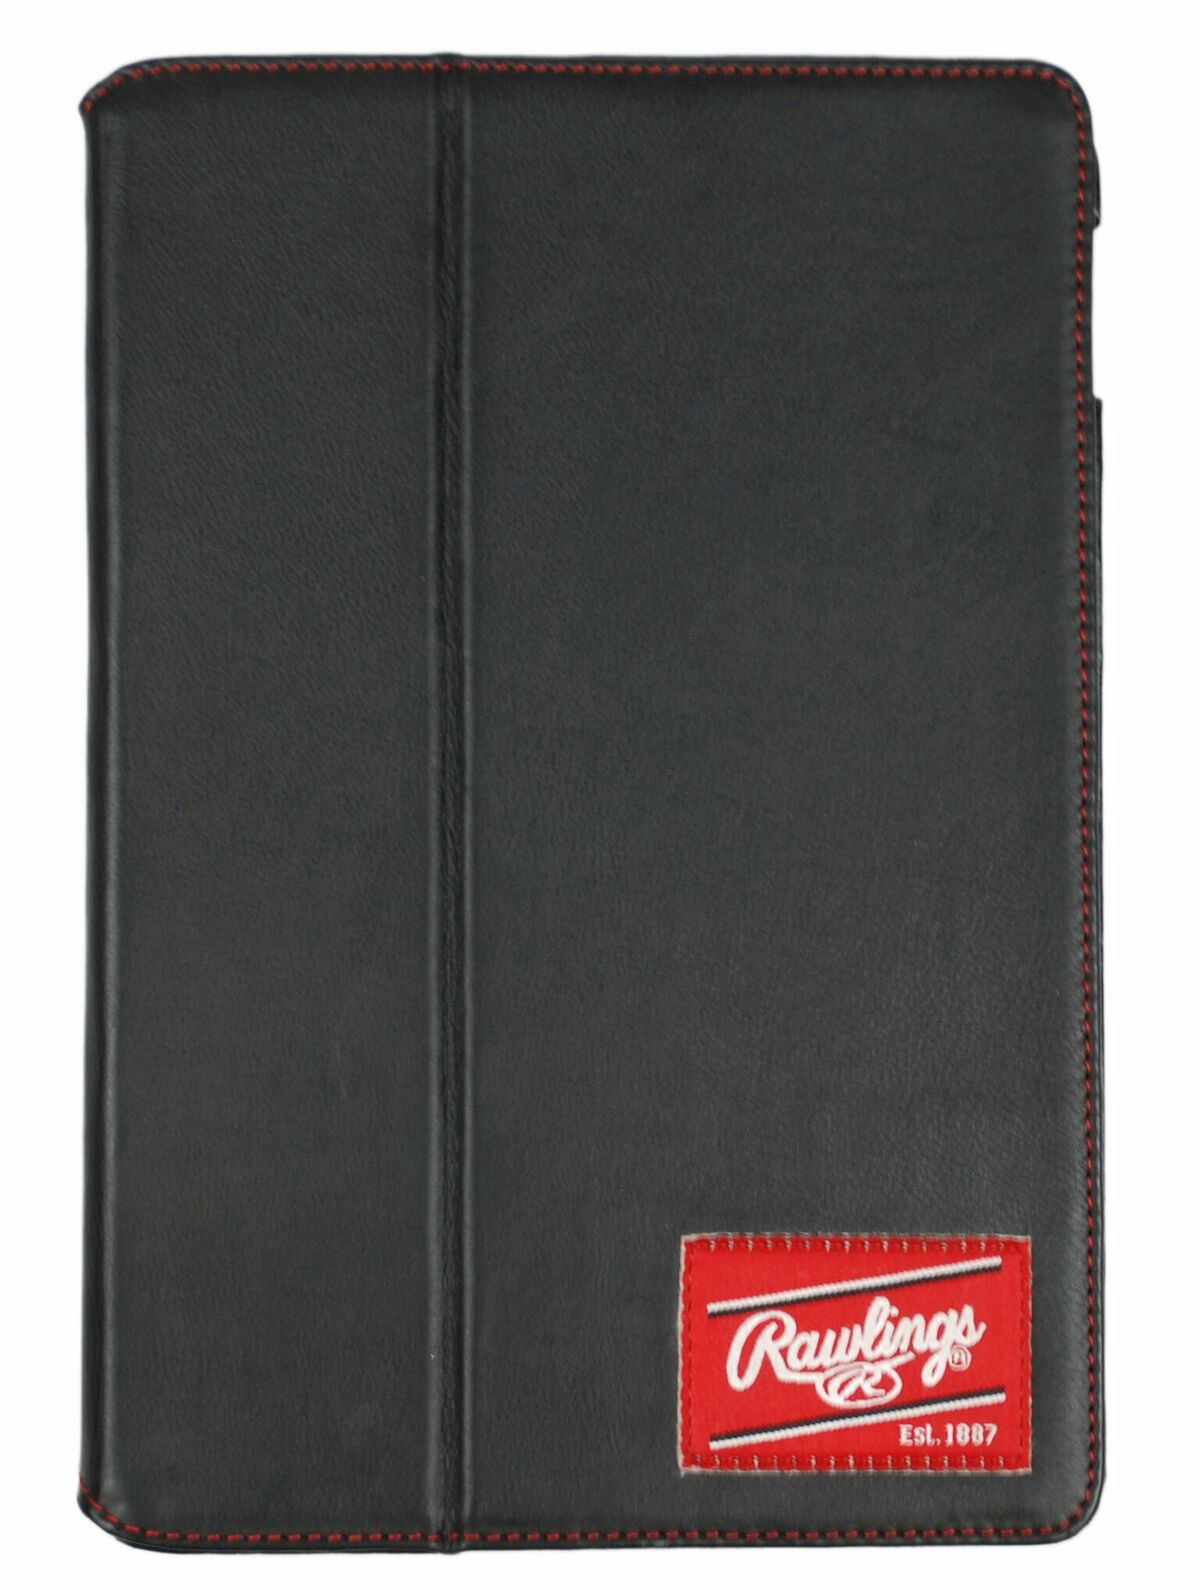 Black Leather iPad Air 2 Case by Rawlings<br>RETIRED DESIGN<br>ONLY 1 LEFT!